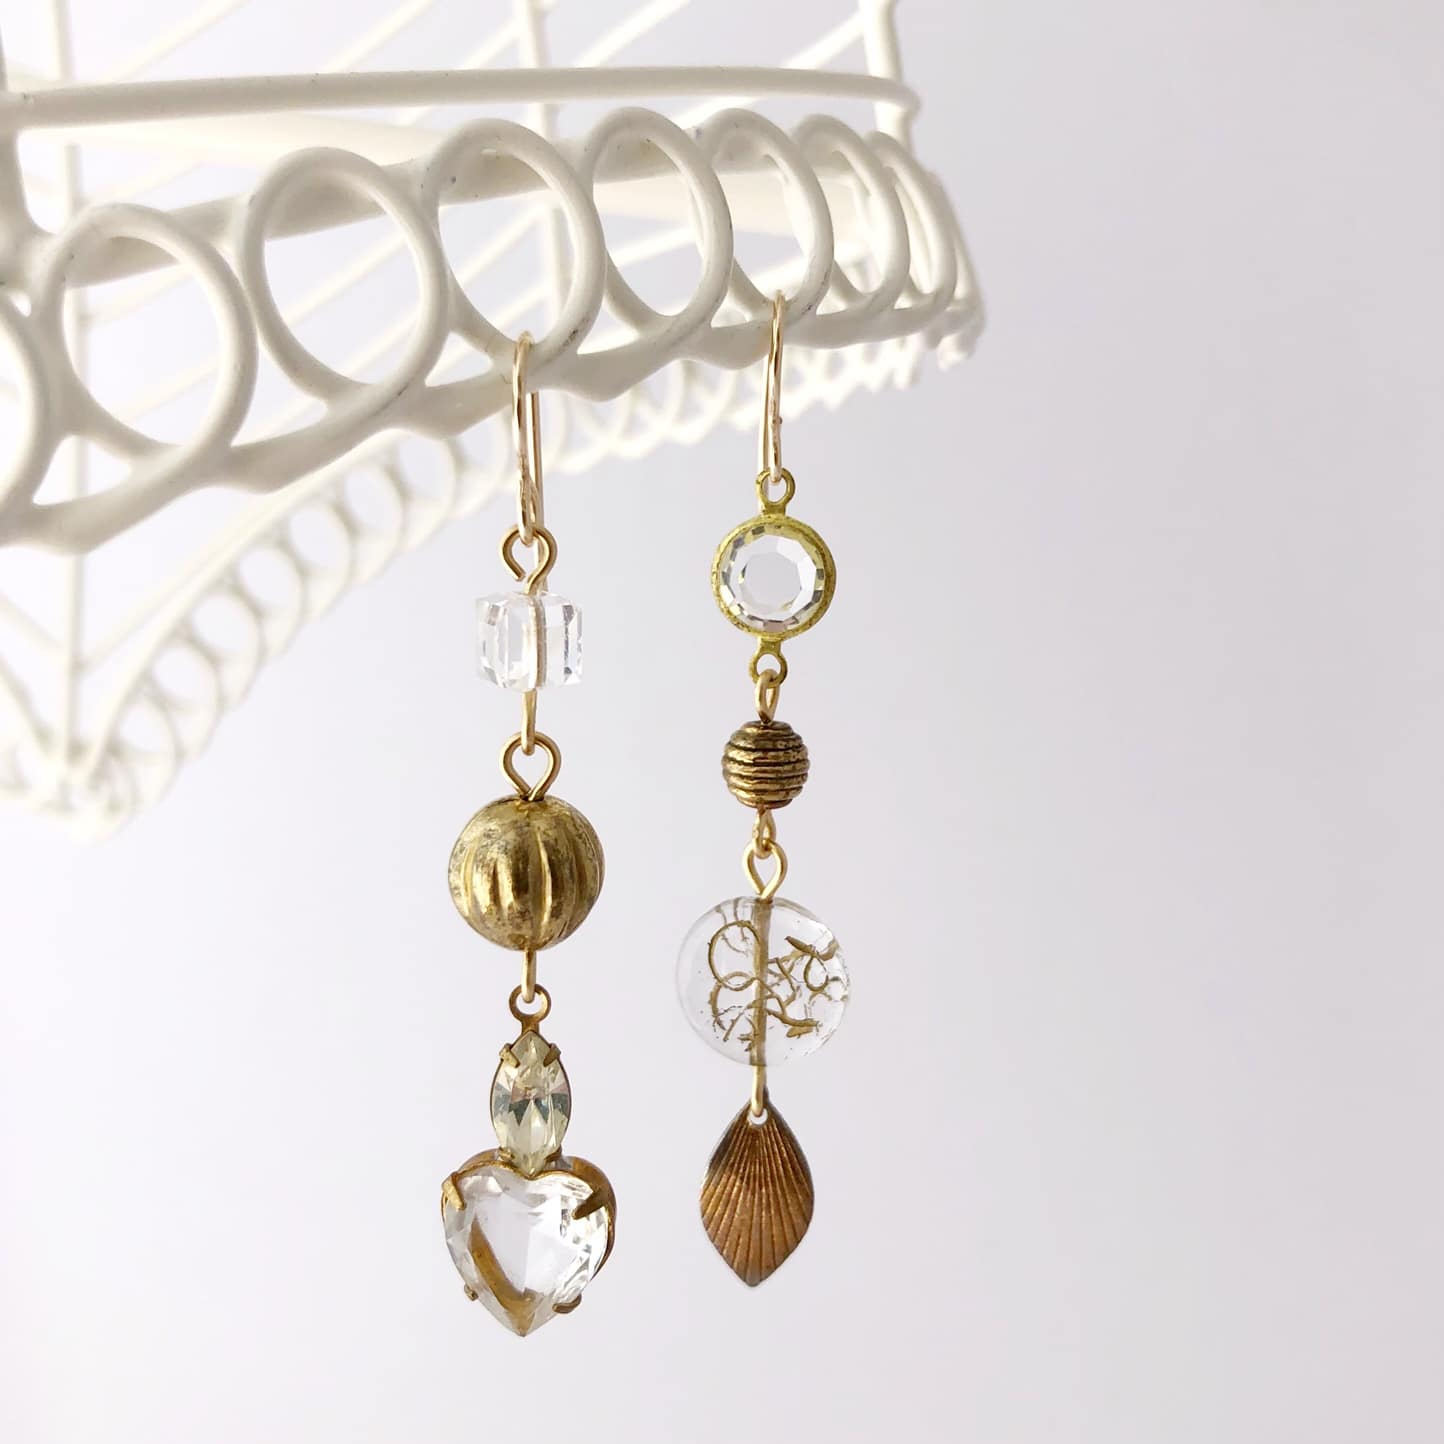 Asymmetrical Vintage Crystal And Gold Earrings By My Vintage Obsession